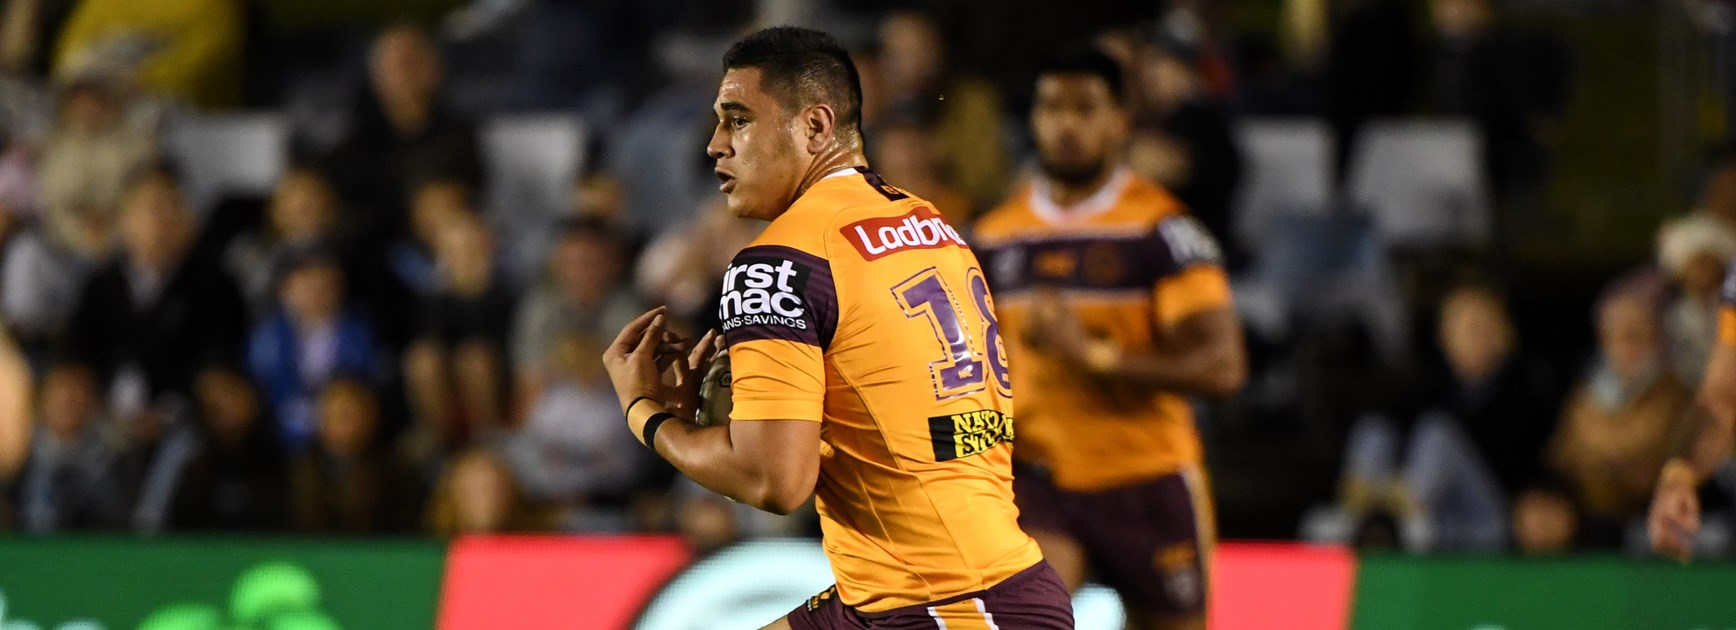 Broncos young gun undergoes ACL surgery